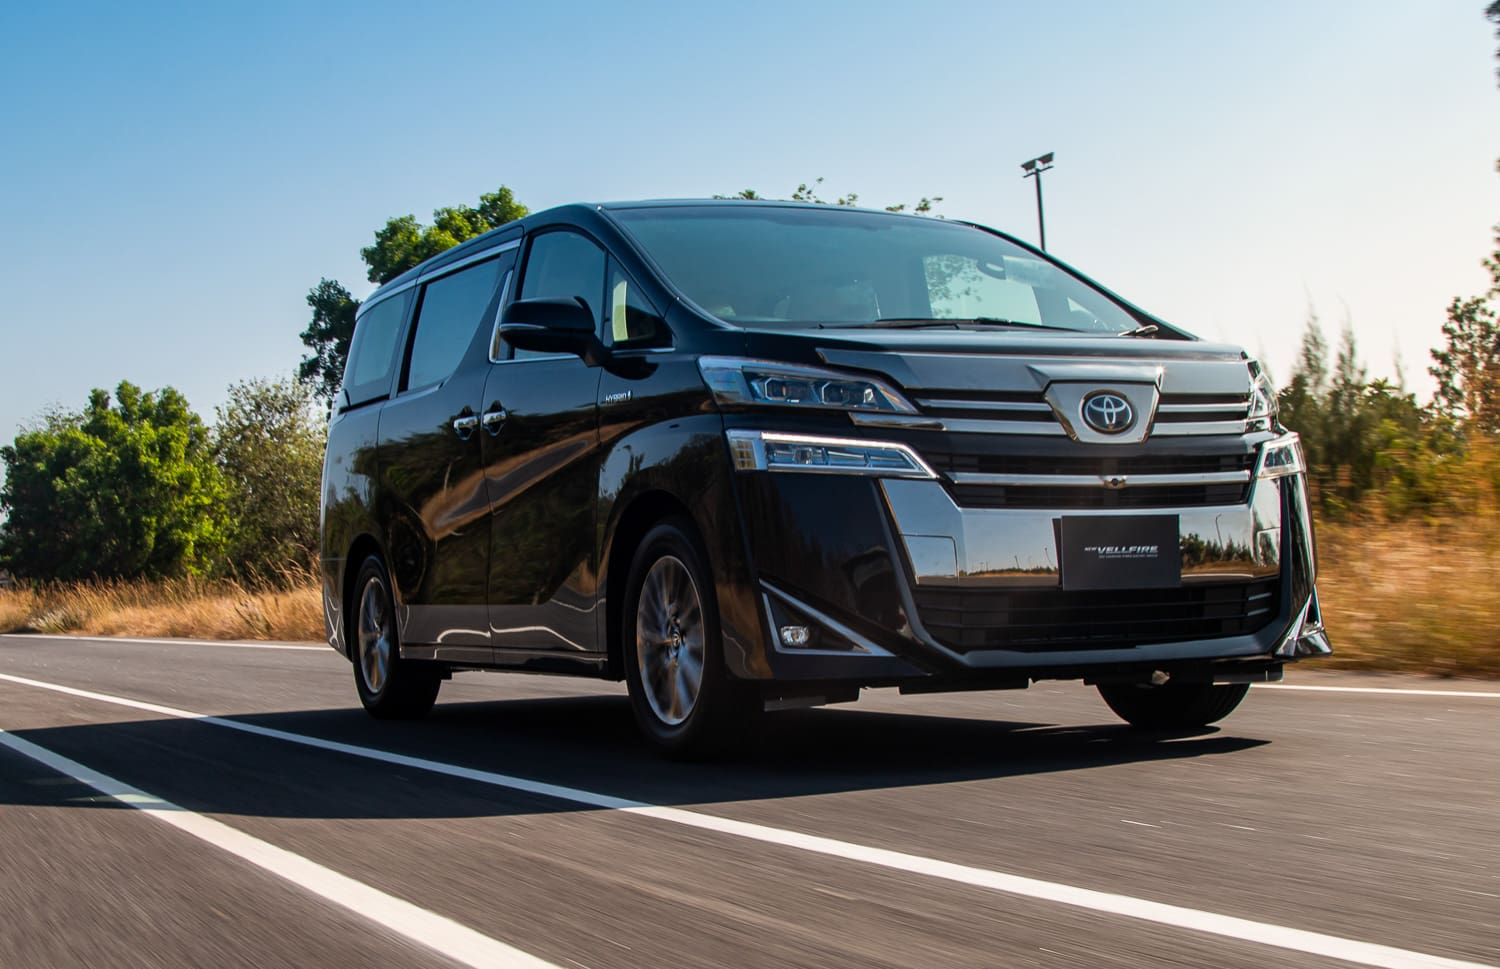 Toyota Vellfire: First Drive Review